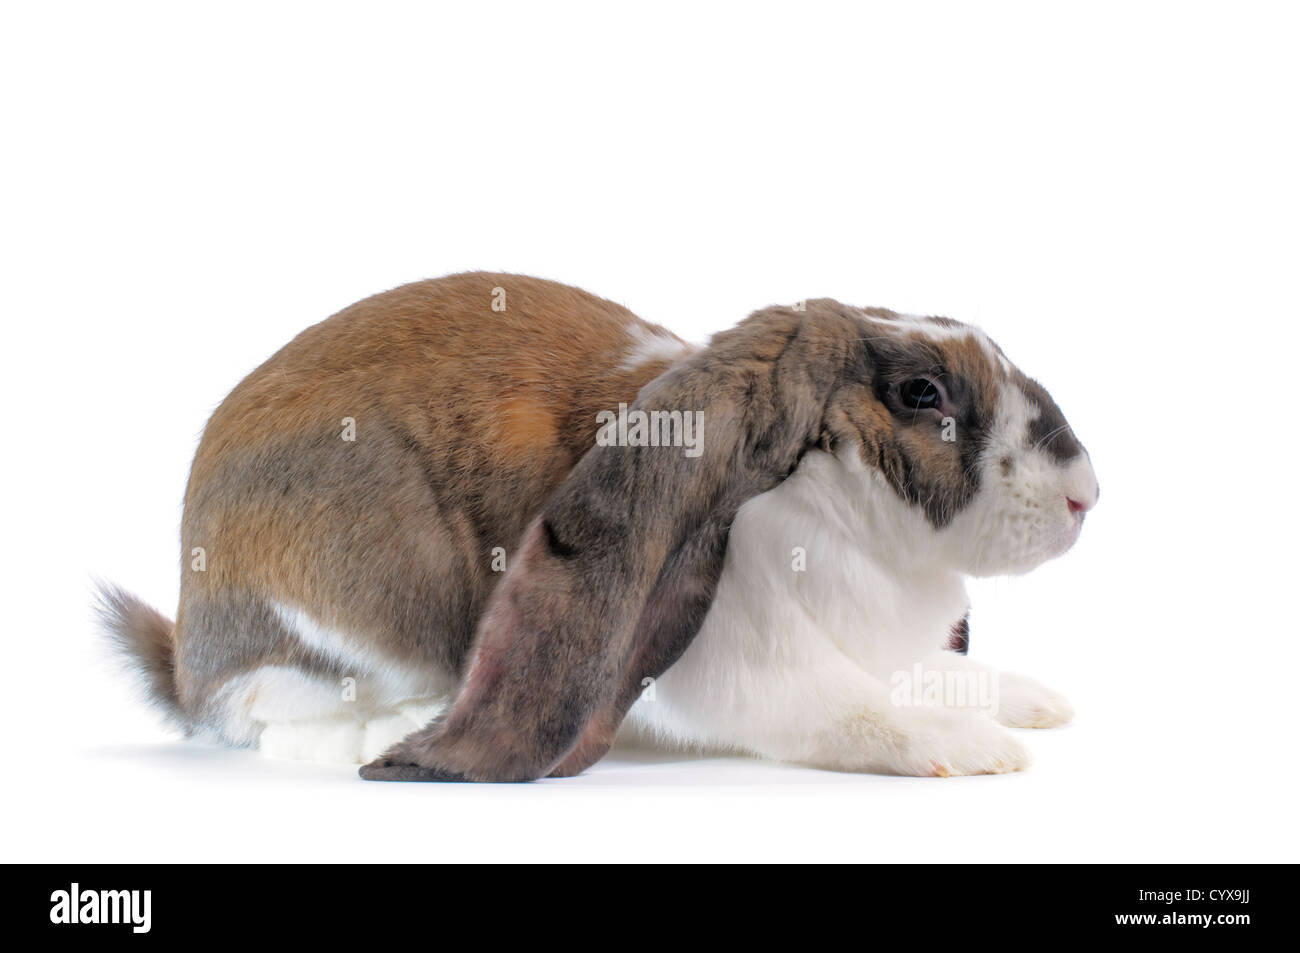 An English Lop Rabbit on white background. - Stock Image